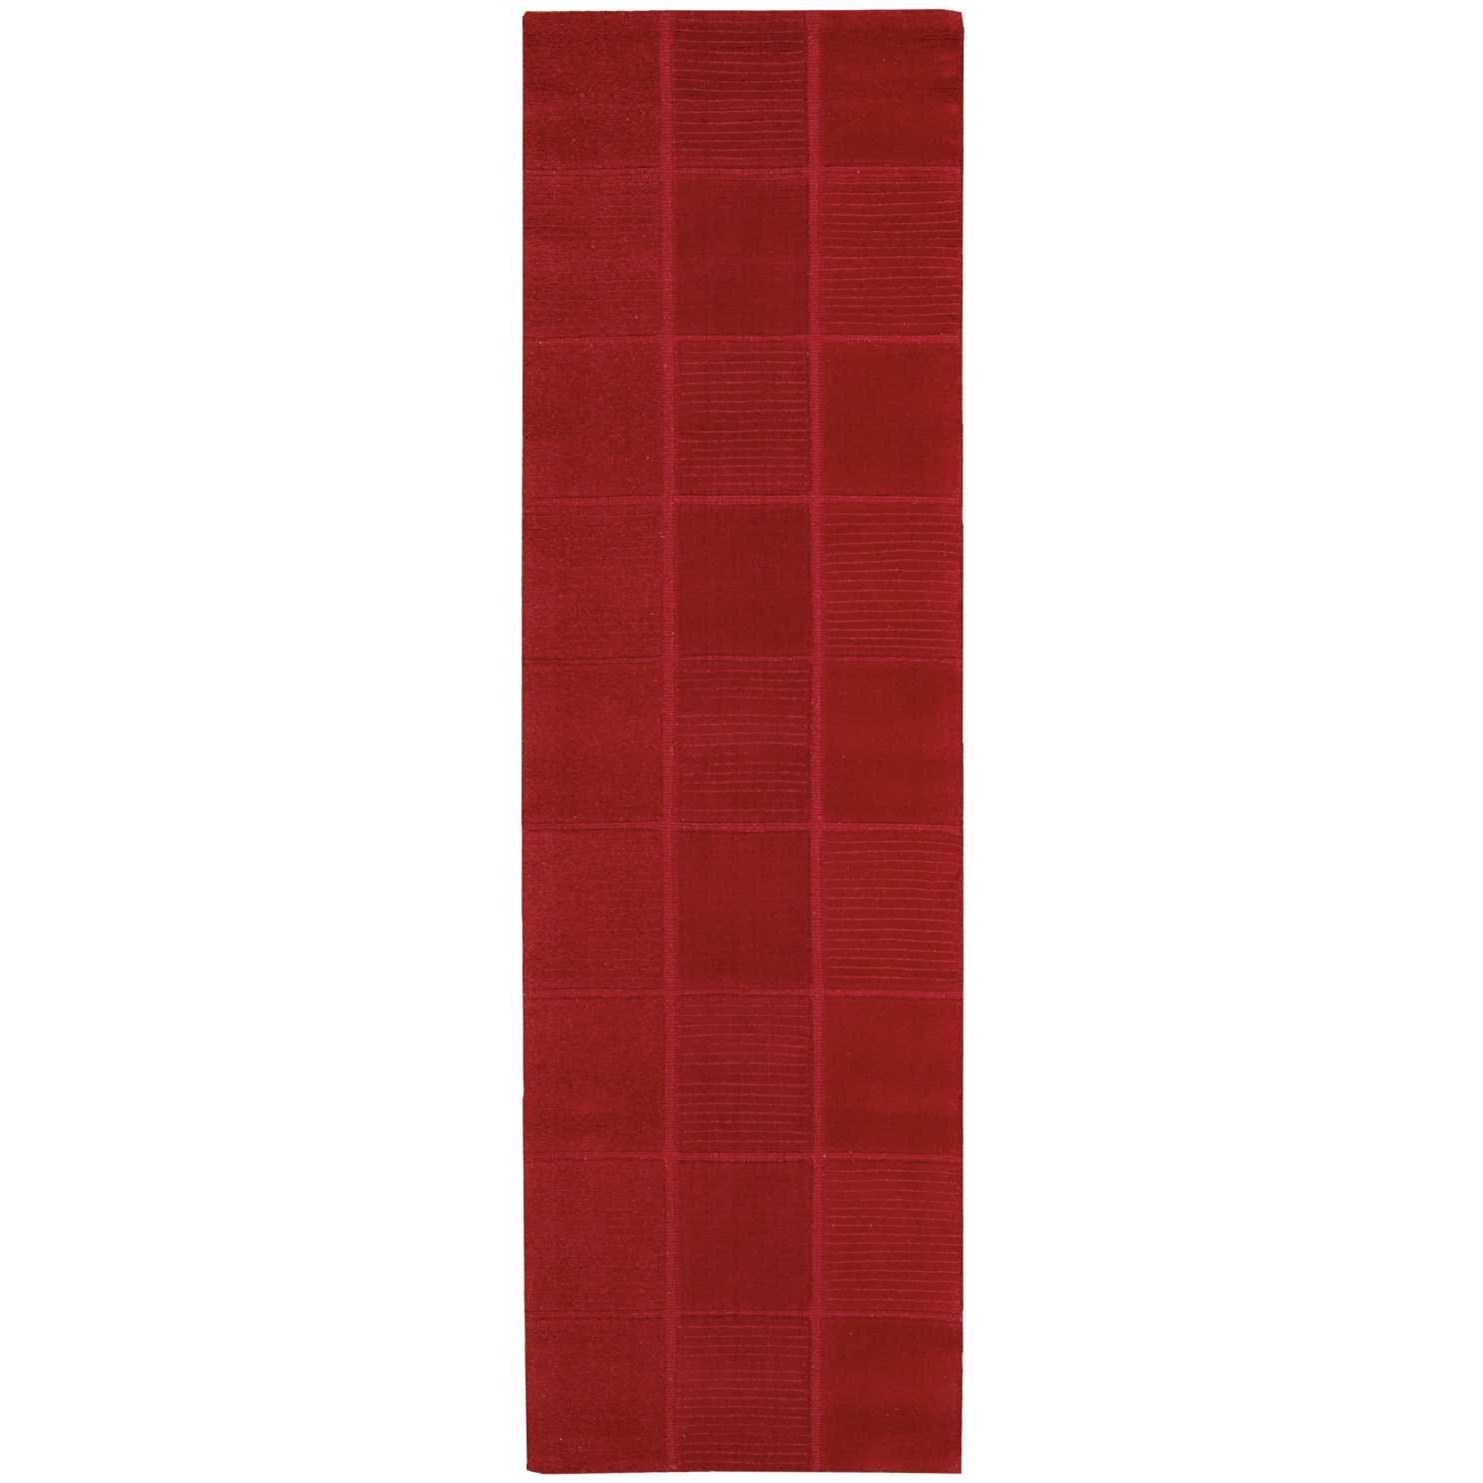 "Westport 2'3"" x 7'6"" Red Runner Rug by Nourison at Home Collections Furniture"